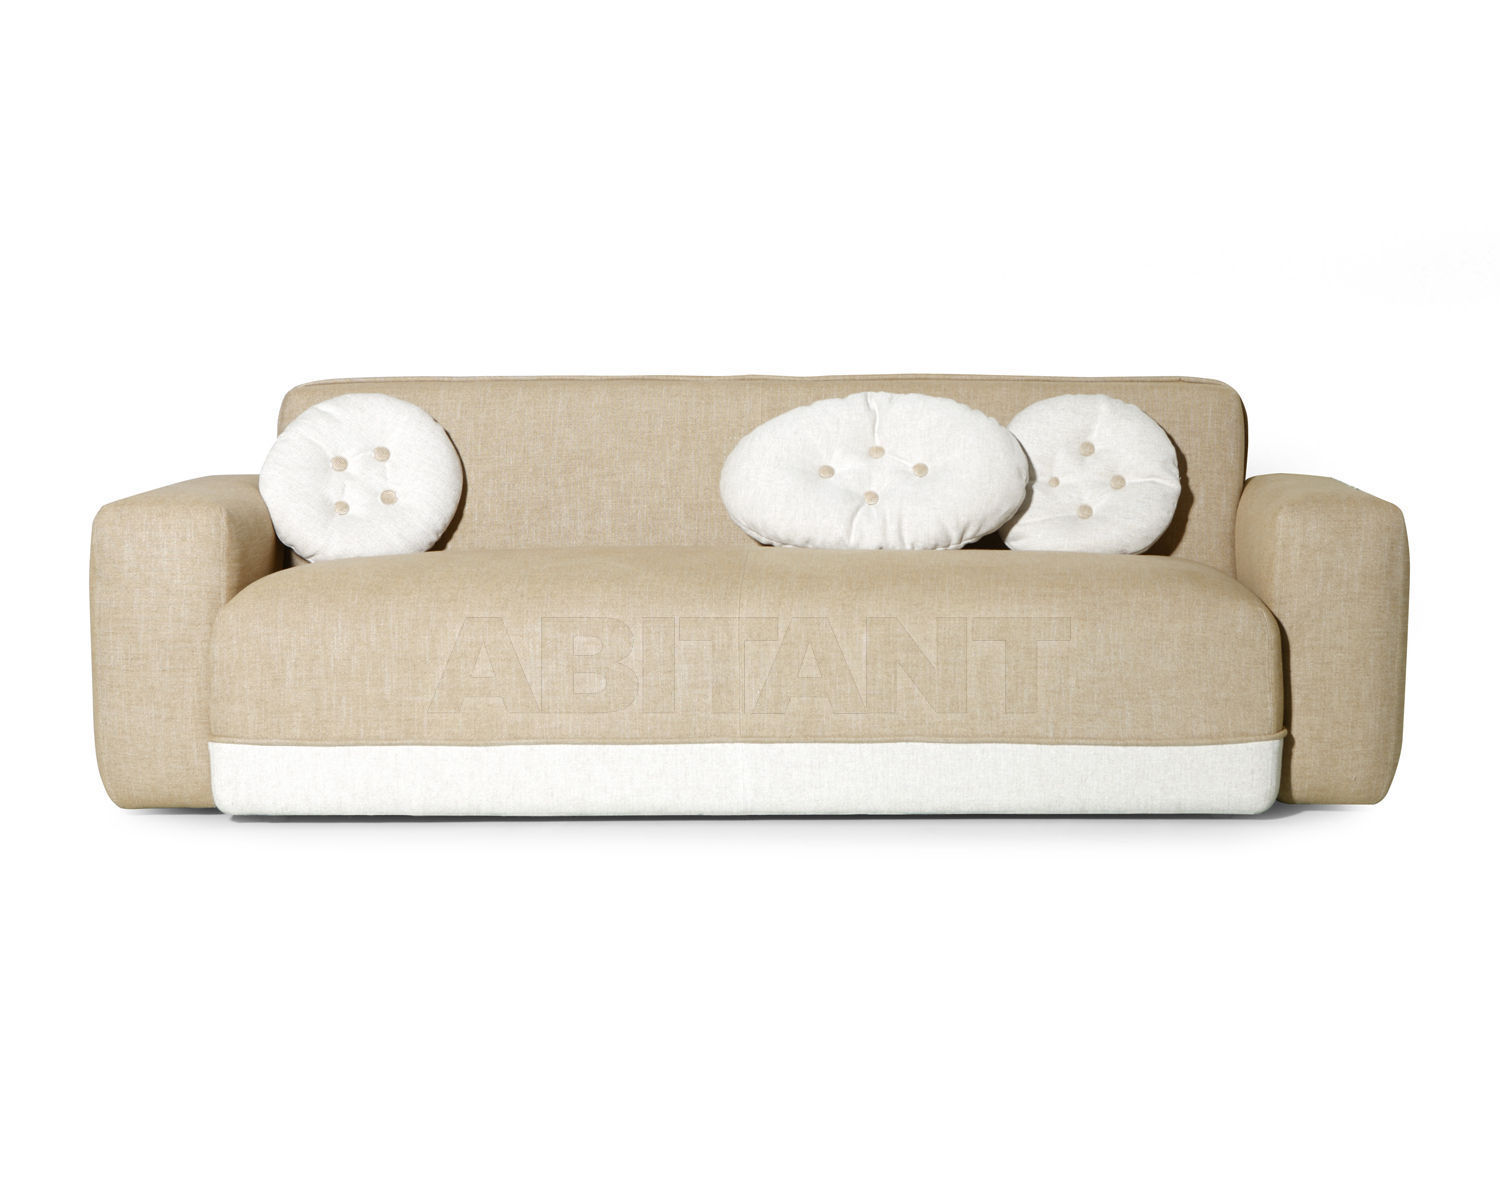 Купить Диван Party Sancal Diseno, S.L. Sofa 277.121.S+277.135.I+277.135.D beige